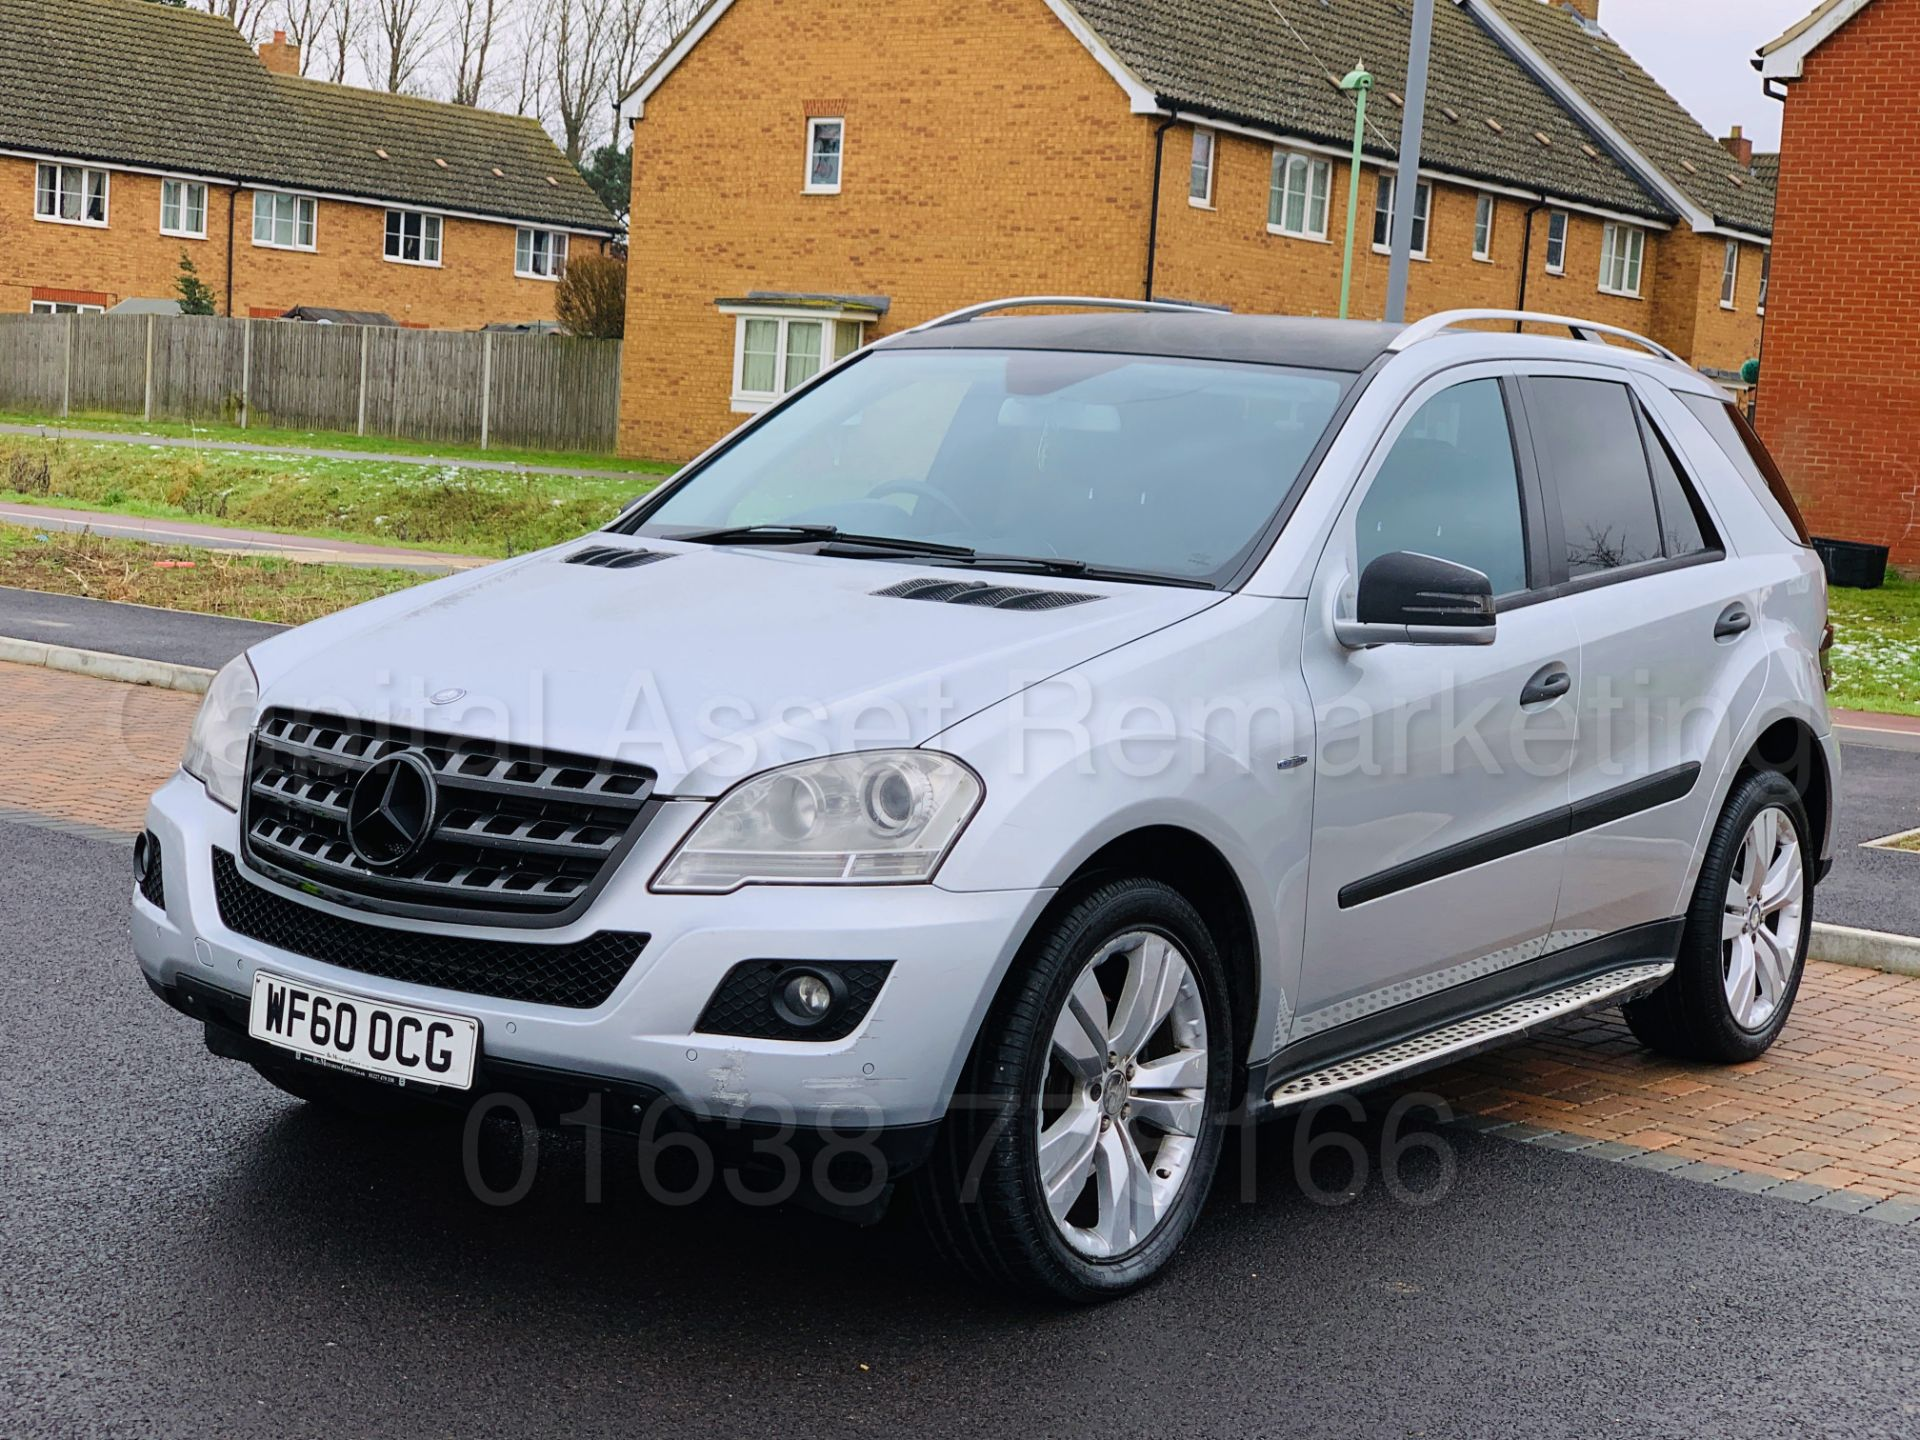 Lot 19 - MERCEDES-BENZ ML 350 CDI *SPORT* (2011 MODEL) '3.0 DIESEL - 231 BHP - AUTO' **TOP OF THE RANGE**